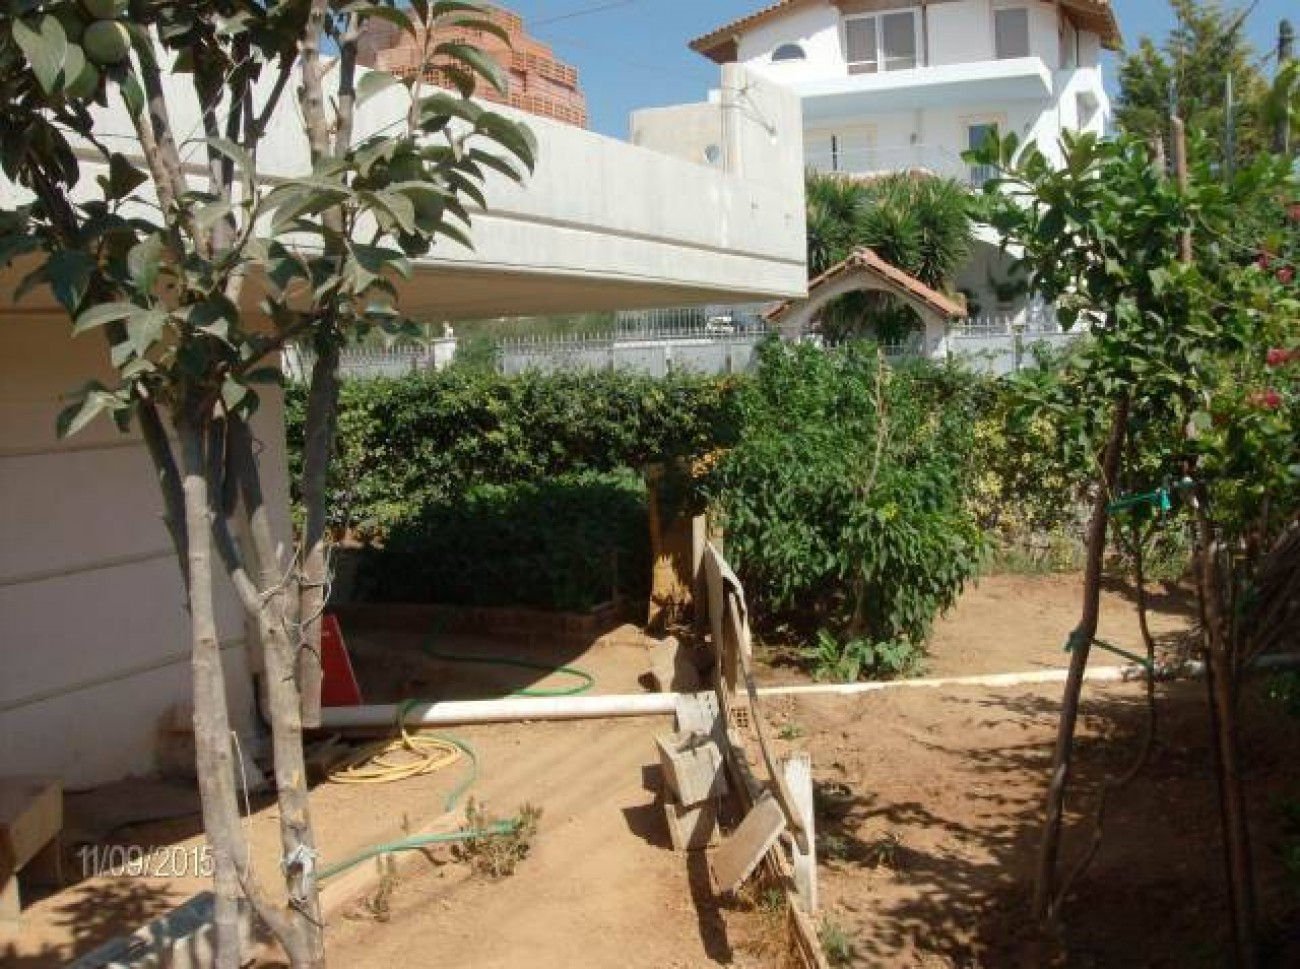 House for Sale in Central & Southern Suburbs, Prefecture of Attica